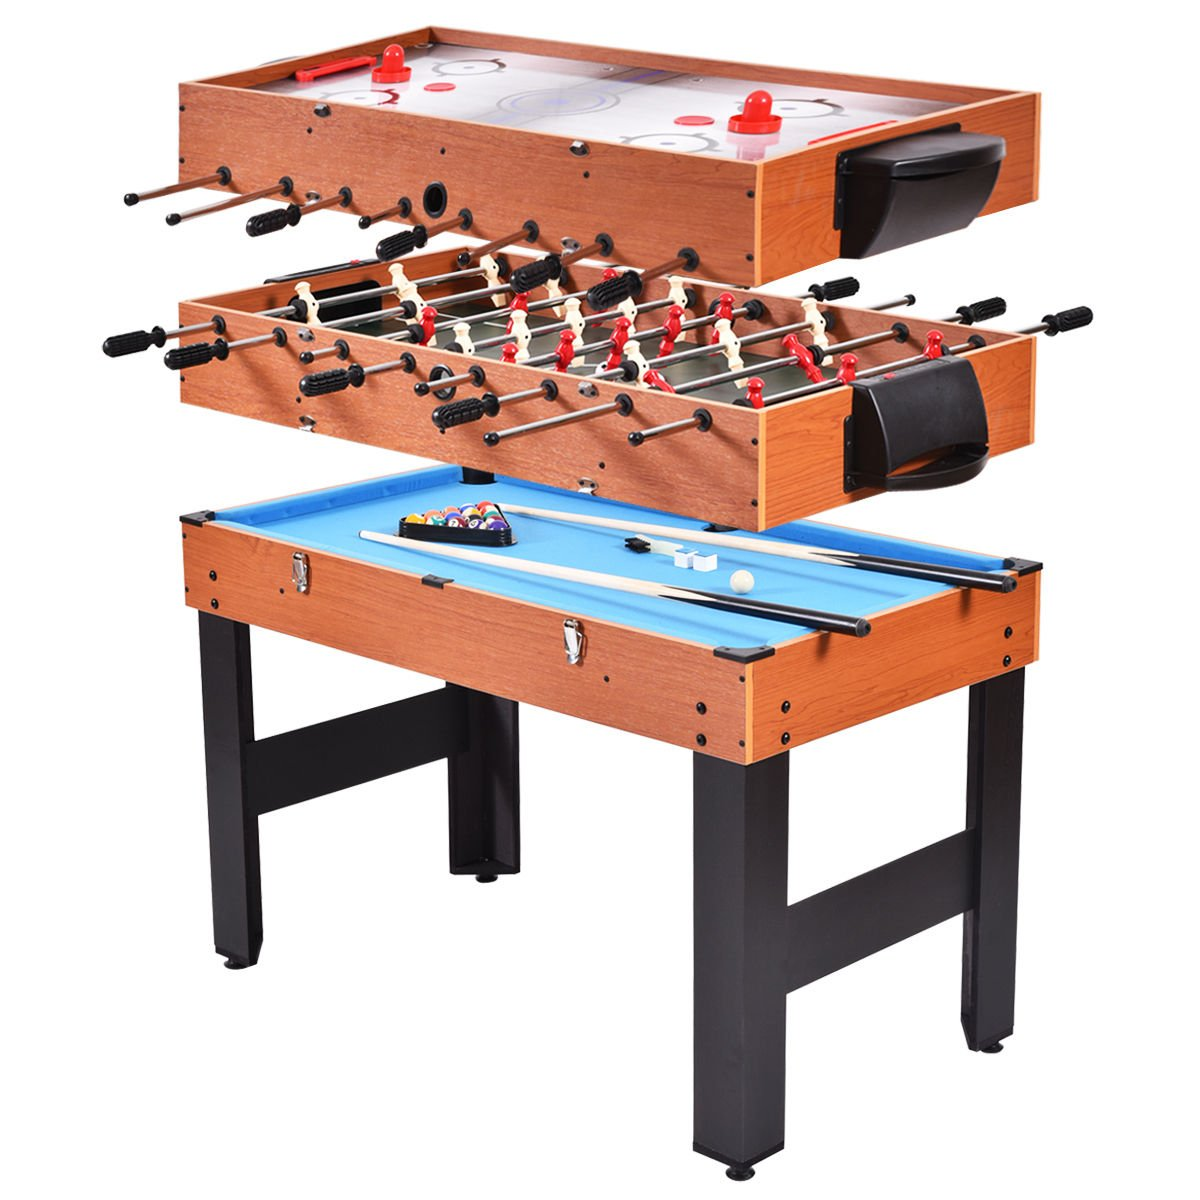 Giantex 48'' 3-In-1 Multi Combo Game Table Foosball Soccer Billiards Pool Hockey For Kids by Giantex